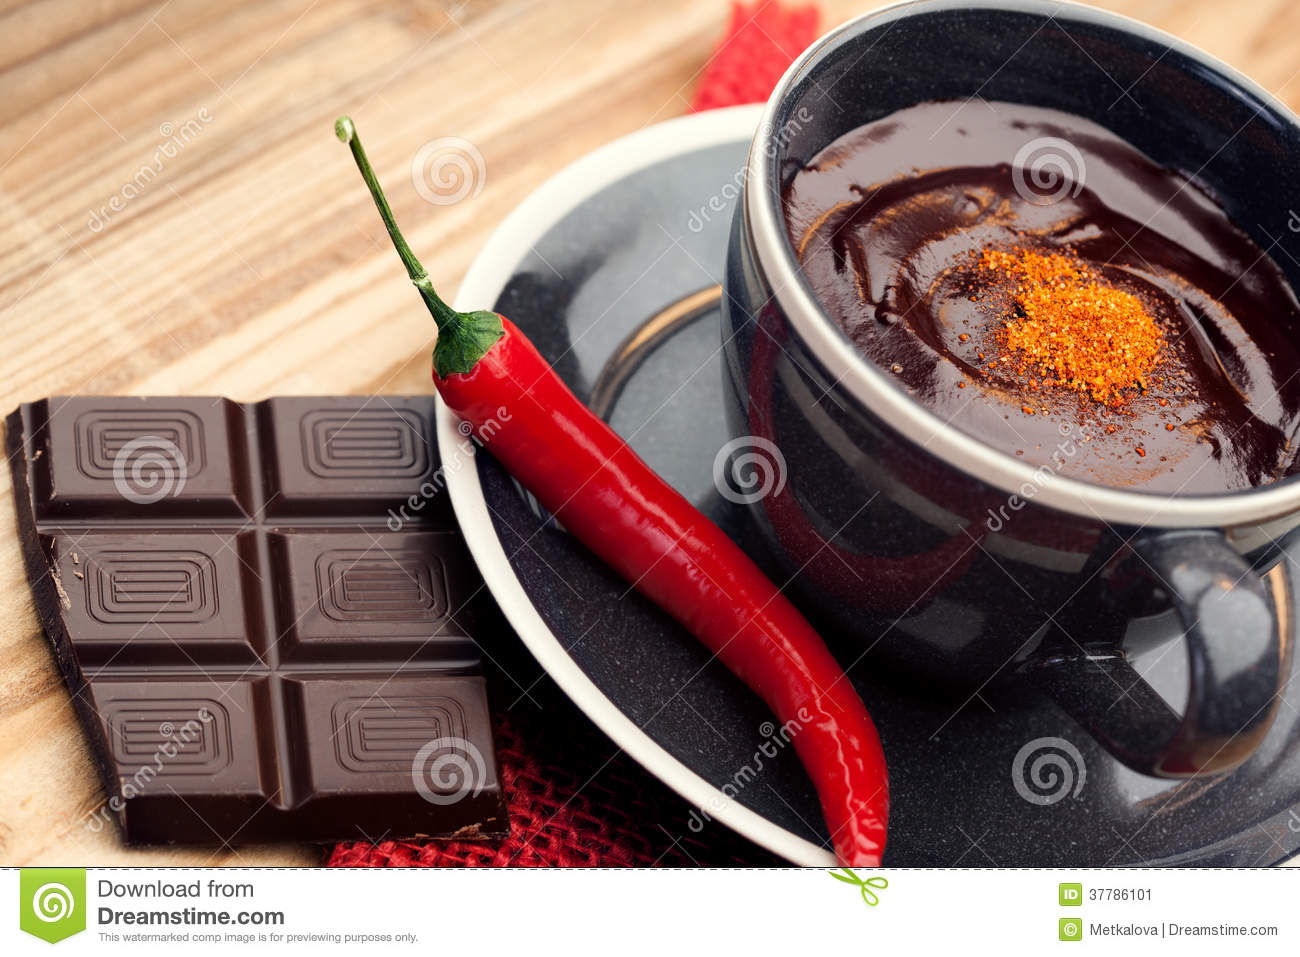 Hot Chocolate With Chili Pepper Stock Image - Image: 37786101